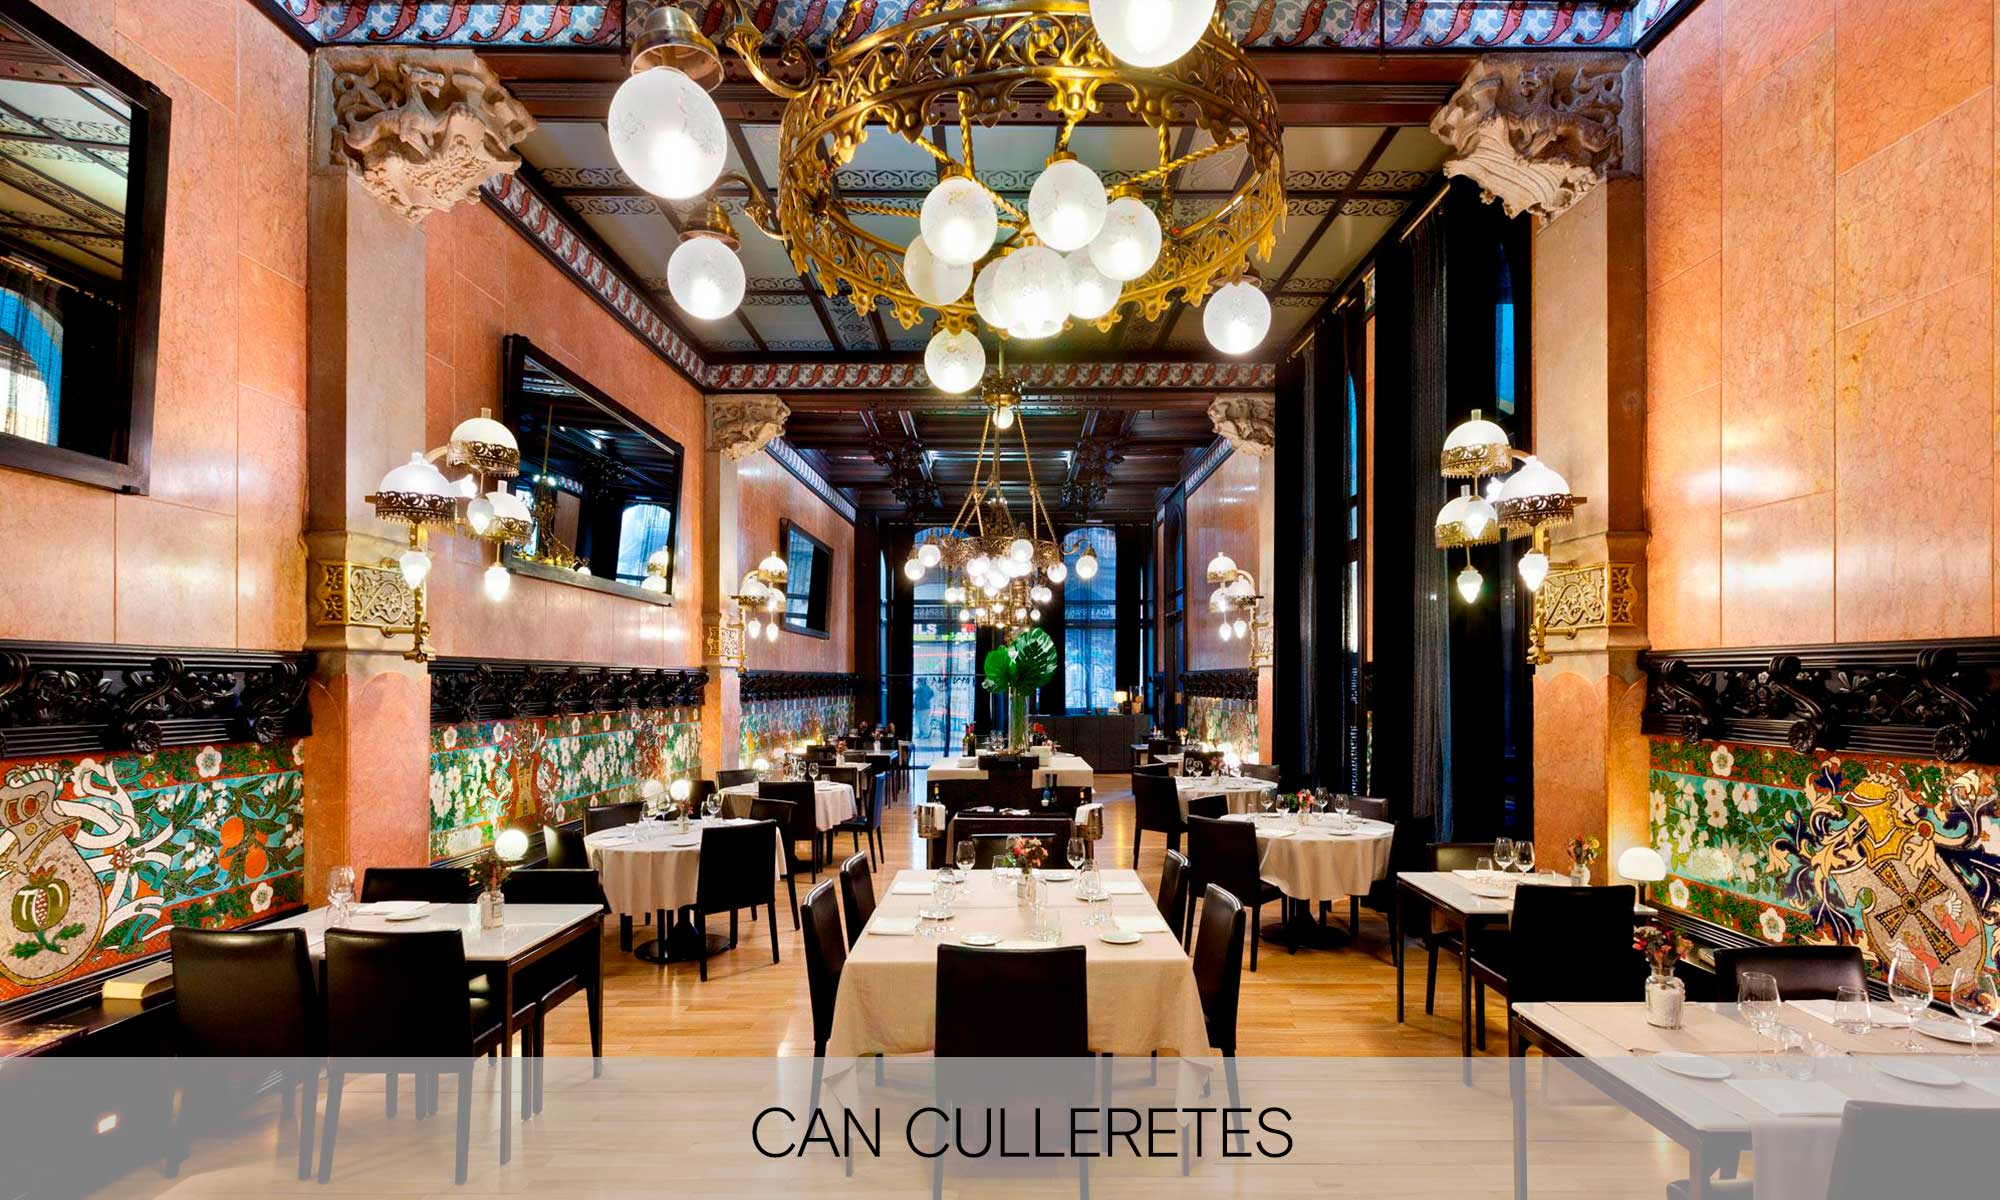 Historic bars of barcelona Can culleretes restaurant | Molins Design interior designers